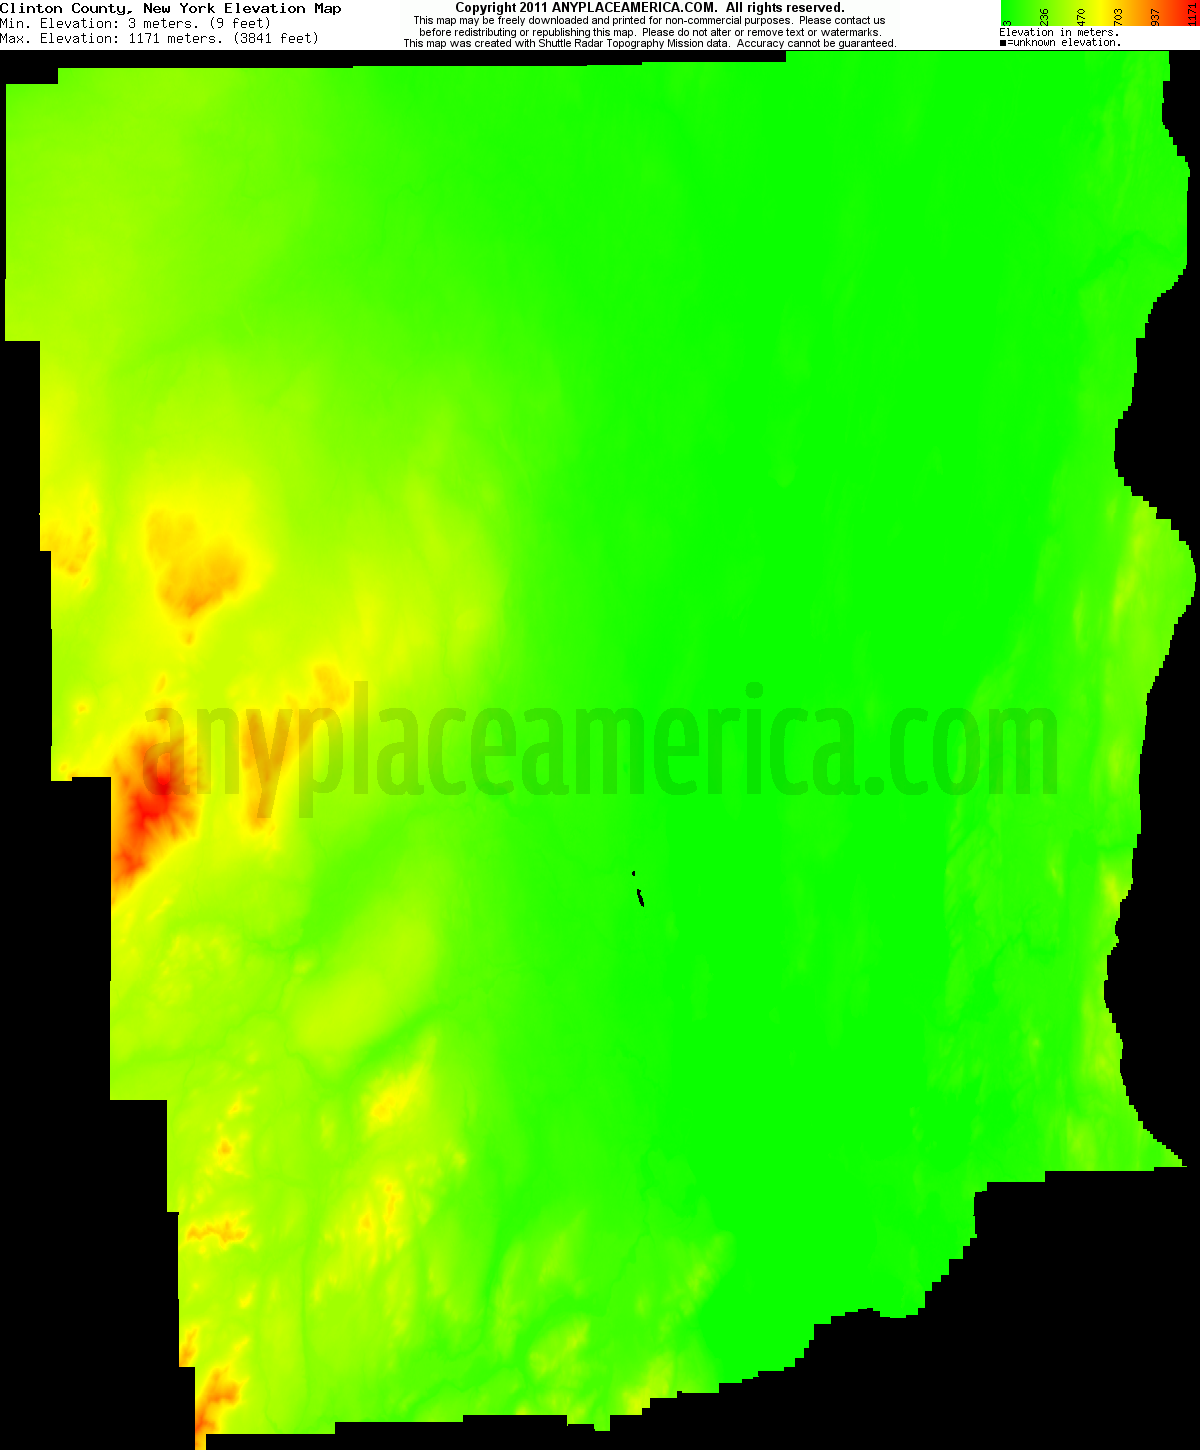 New york clinton county chazy - Download Clinton County Elevation Map